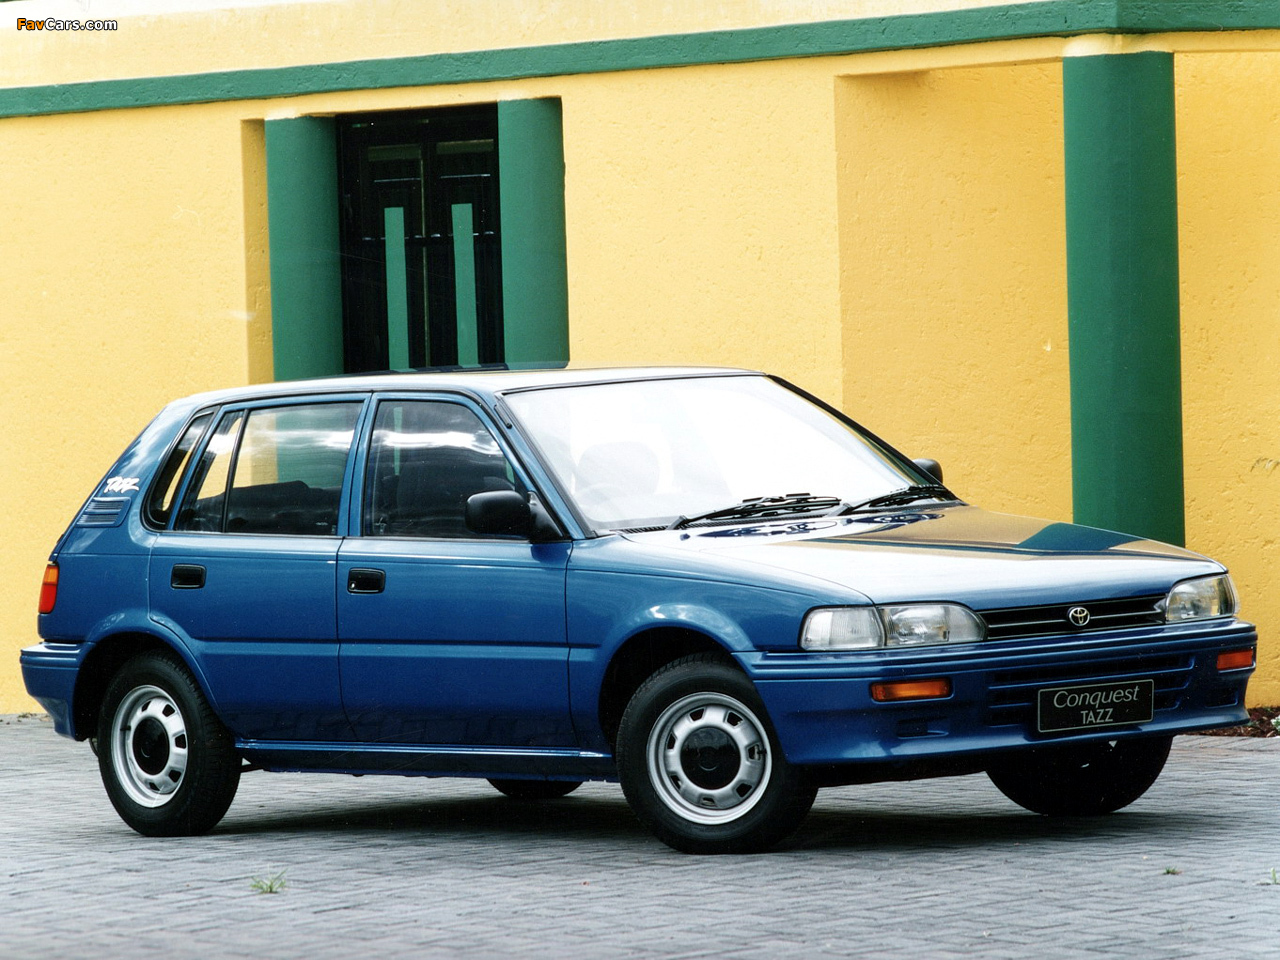 hight resolution of car max toyota conquest car pictures blogspotcom hd 1024 768